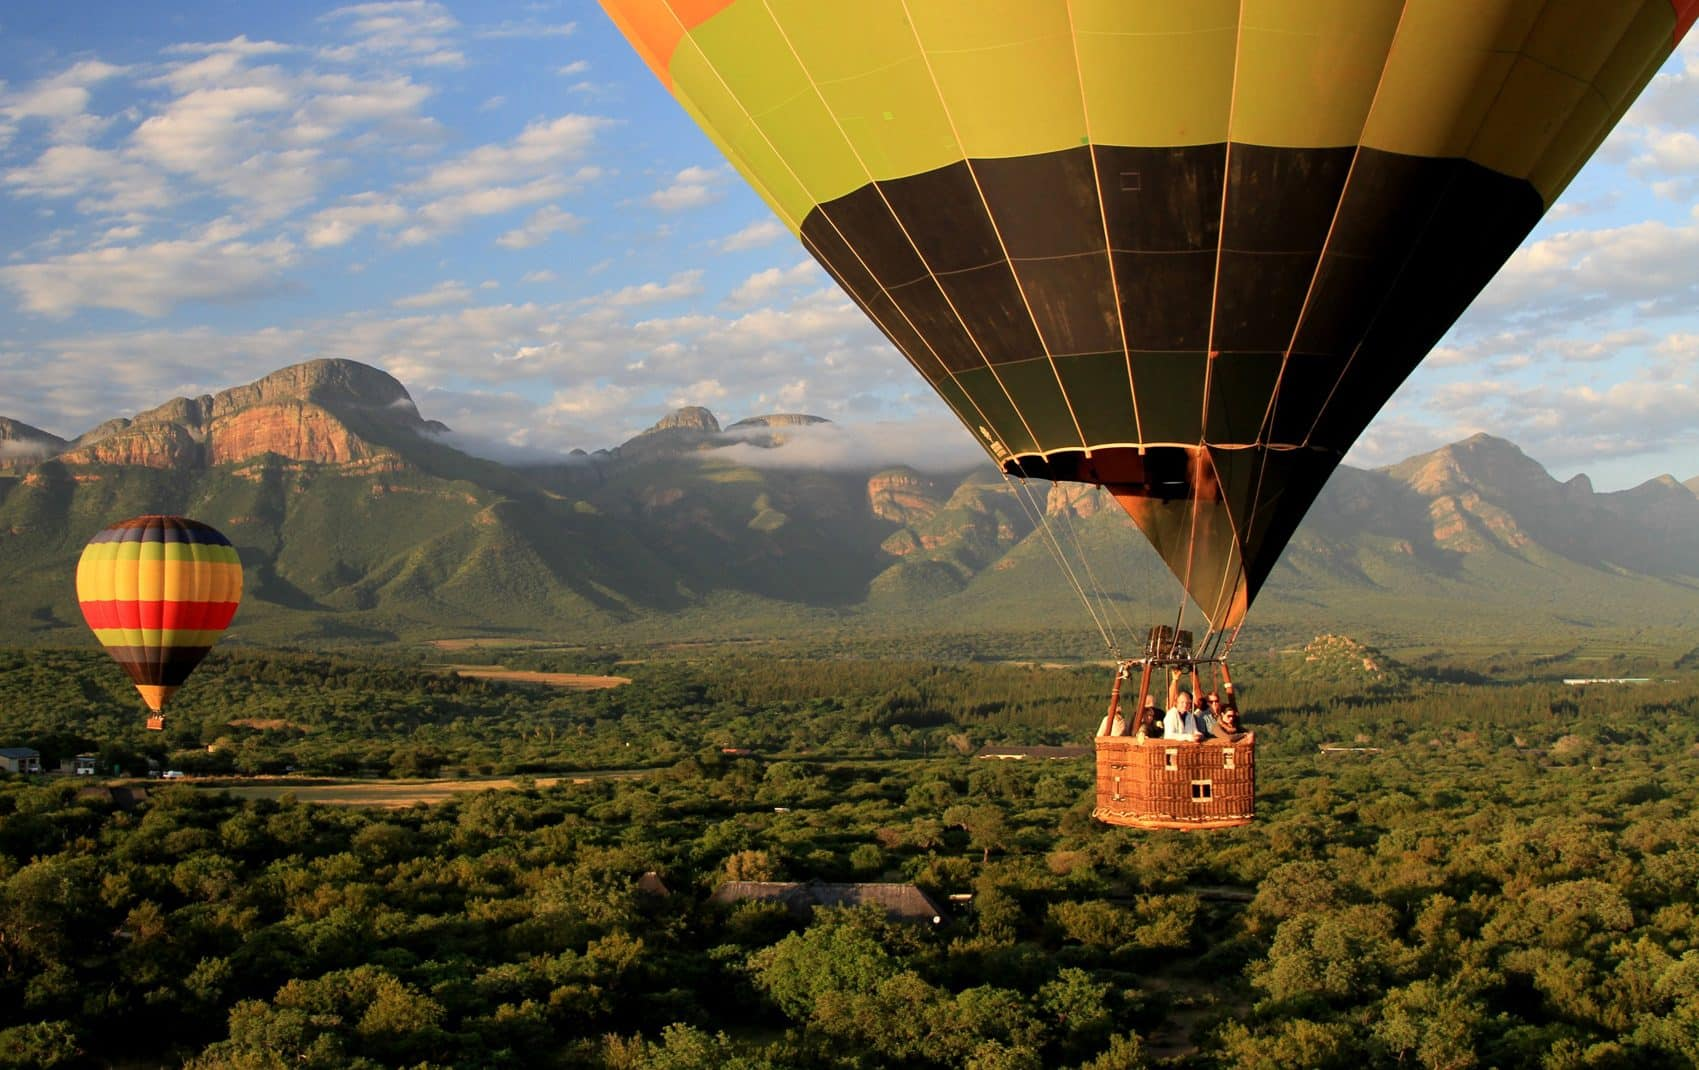 Ballooning the African skies